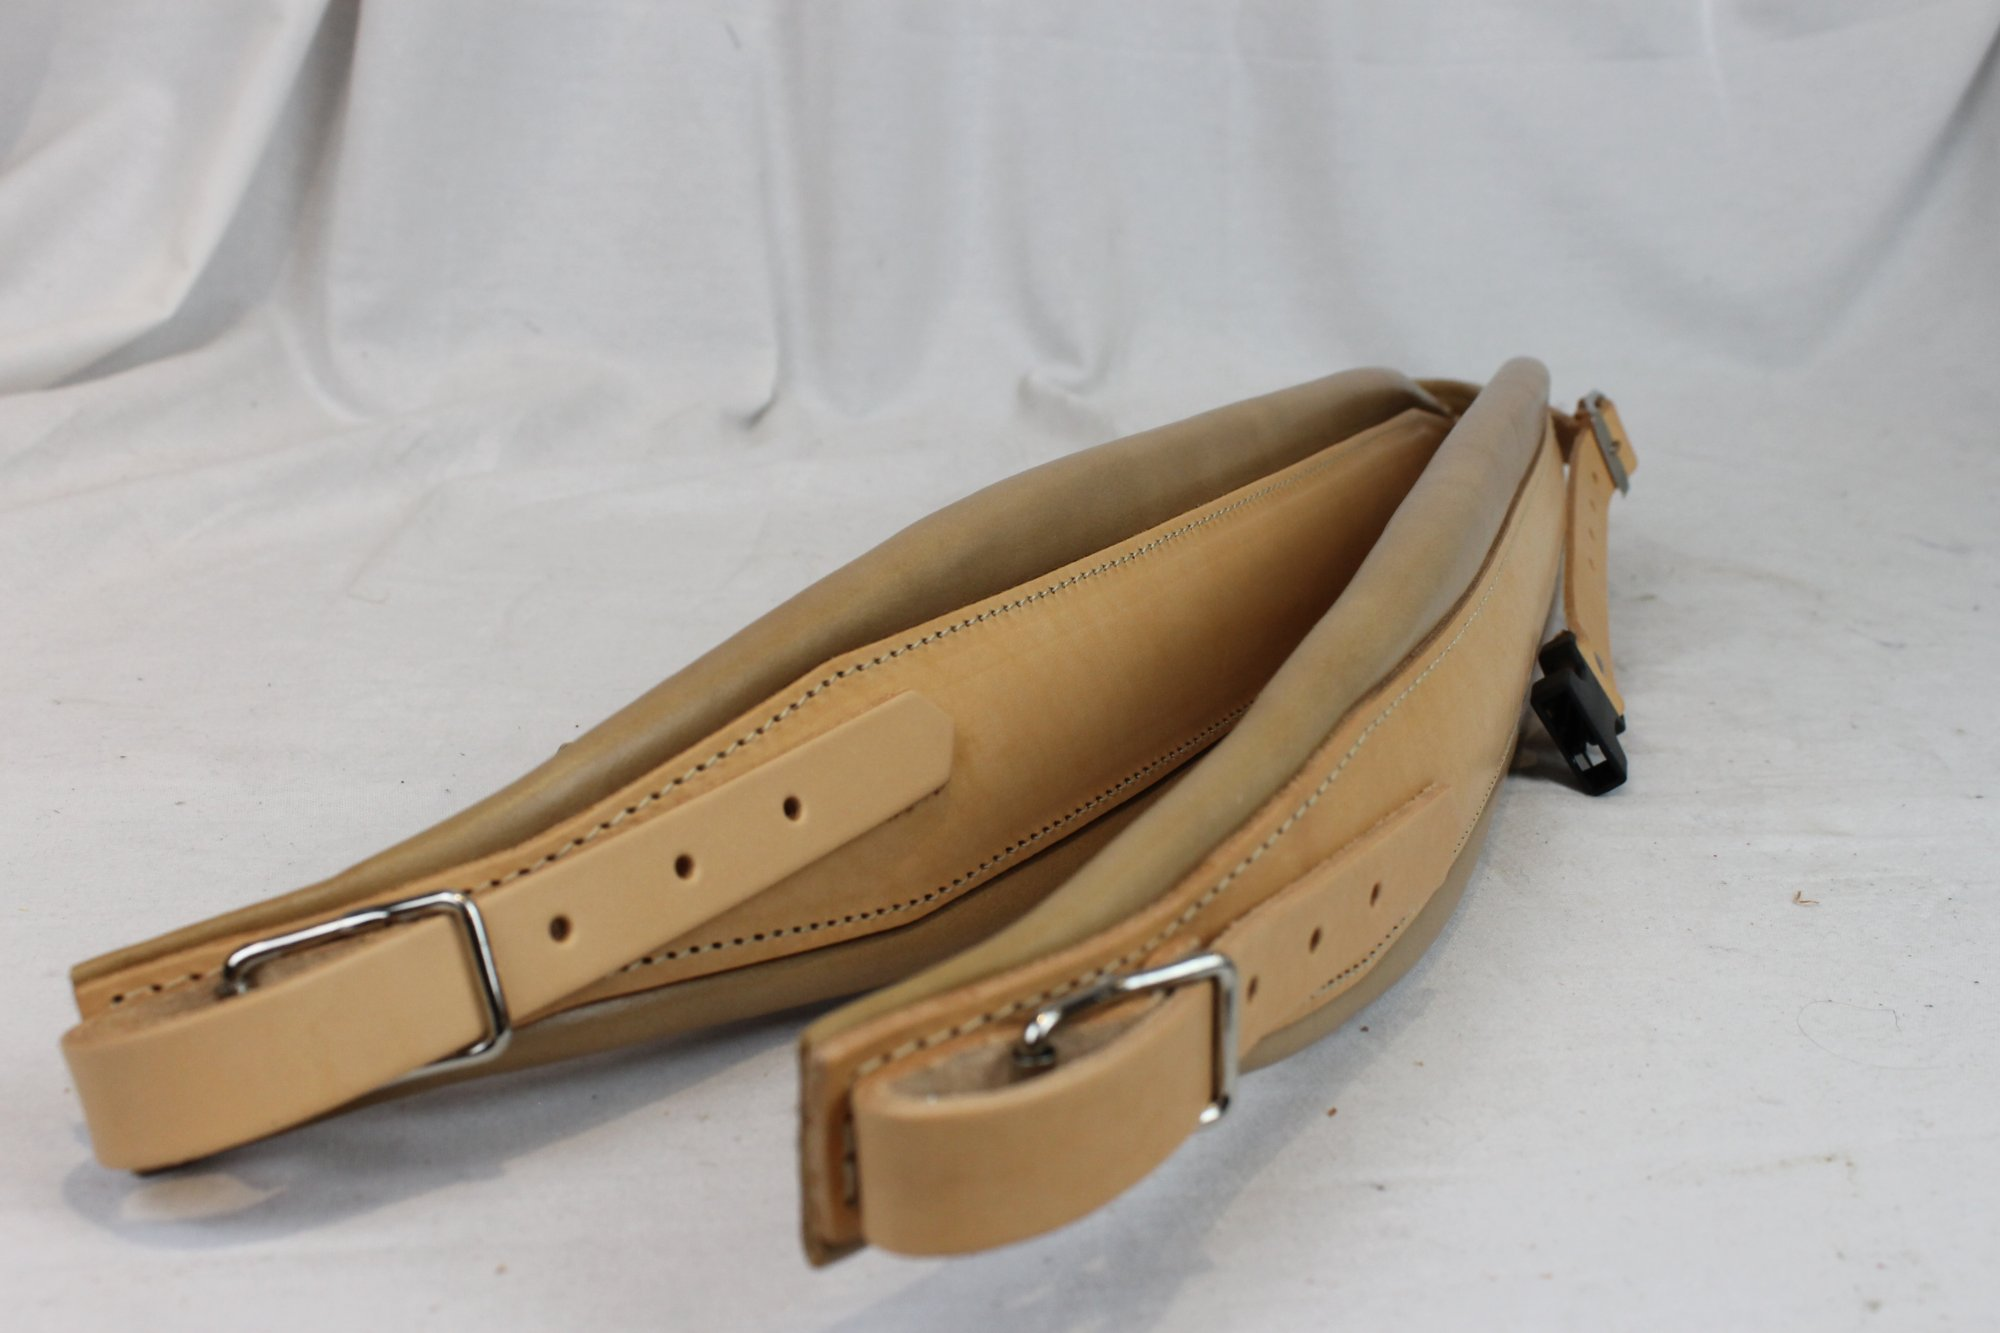 New Tan Leather Pelle Fuselli Accordion Shoulder Straps Width (8cm / 3.1in) Length (95~115cm / 37.4~45.3in)